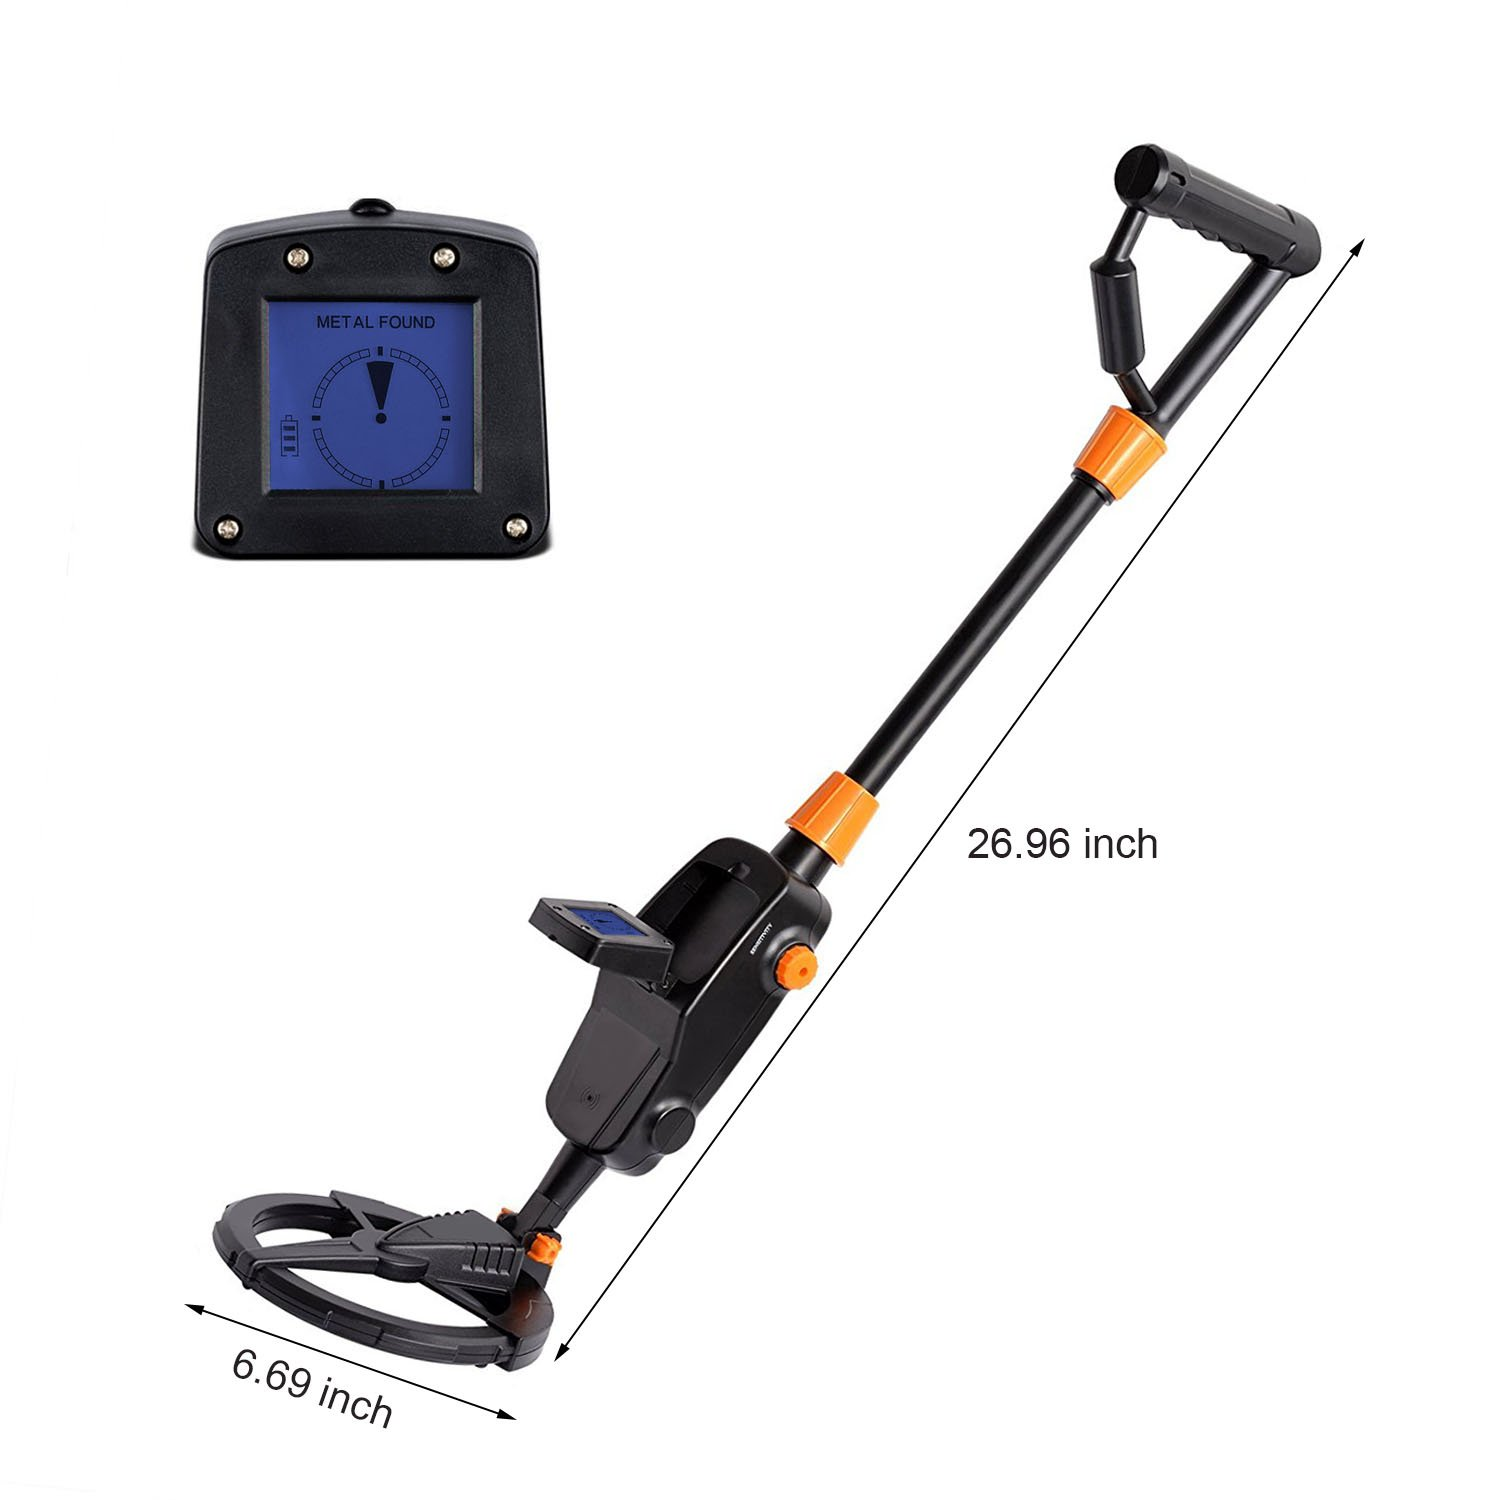 Piscatorzone Kids Metal Detector Md 1008a Underground Fun To Findcoins At The Beach Gold Finder Treasure Hunter Advanced Searching Machine With Lcd Display Waterproof